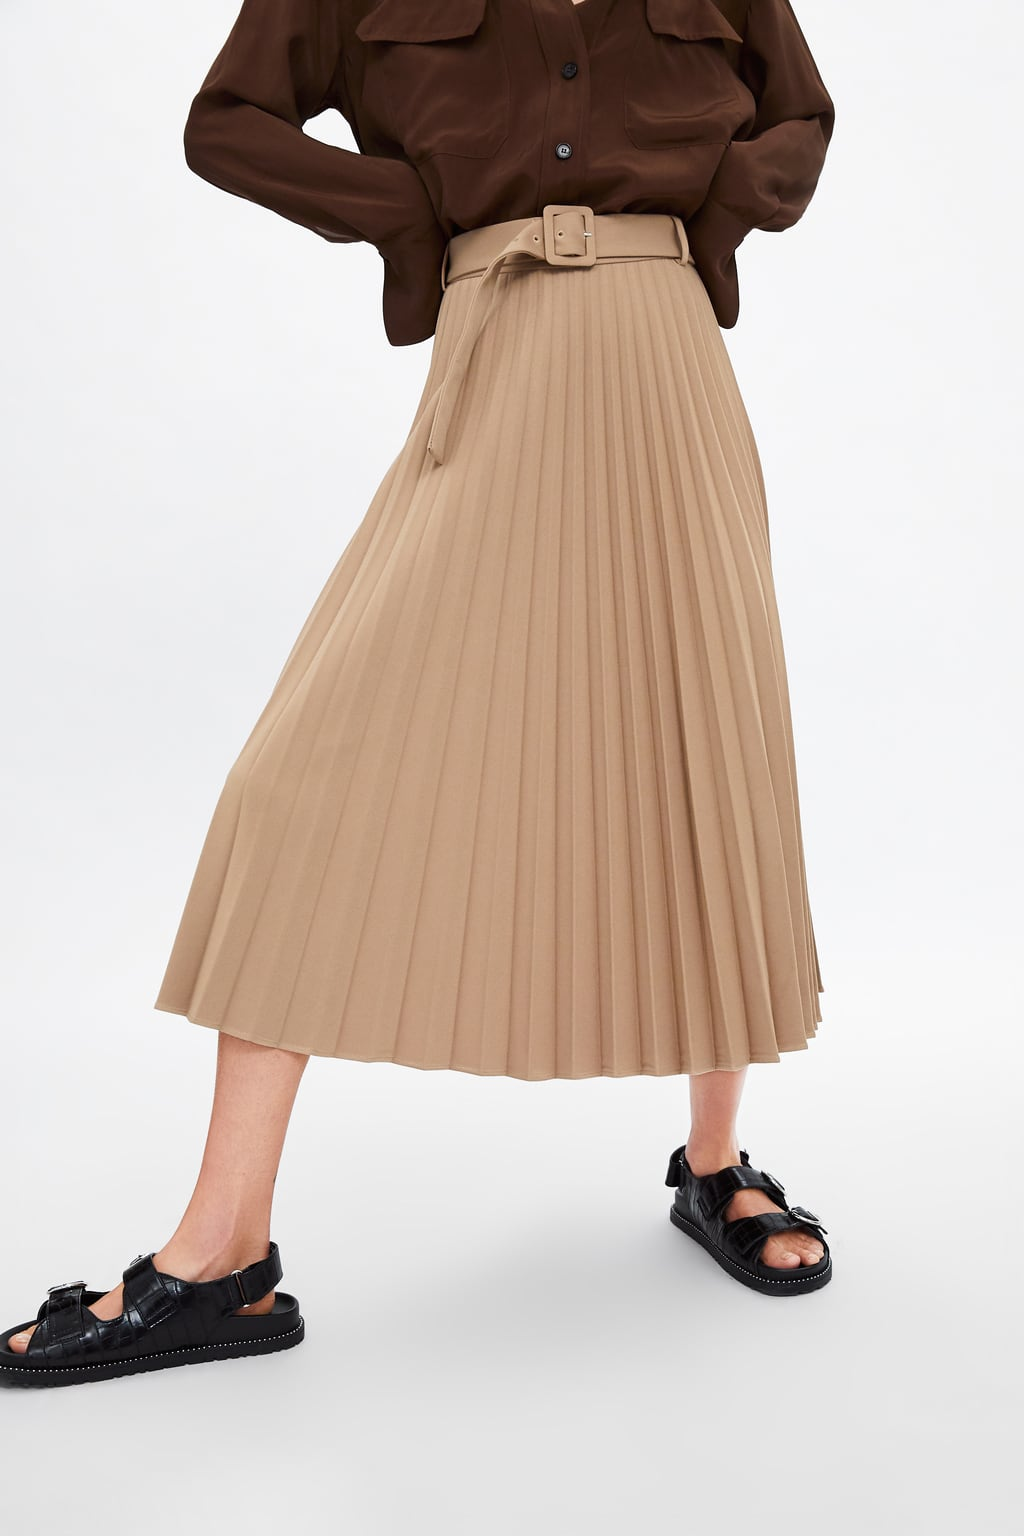 ZARA Belted Pleated Skirt - $69.90I am really digging the belt detail on this skirt and I was also pulled in by the I'm-going-to-explore-a-jungle-in-the-Philippines vibe that Zara styled it in. There are a lot of 60s/ mod/retro belted looks out right now, so this skirt is a perfect way to pull that style into your summer wardrobe.